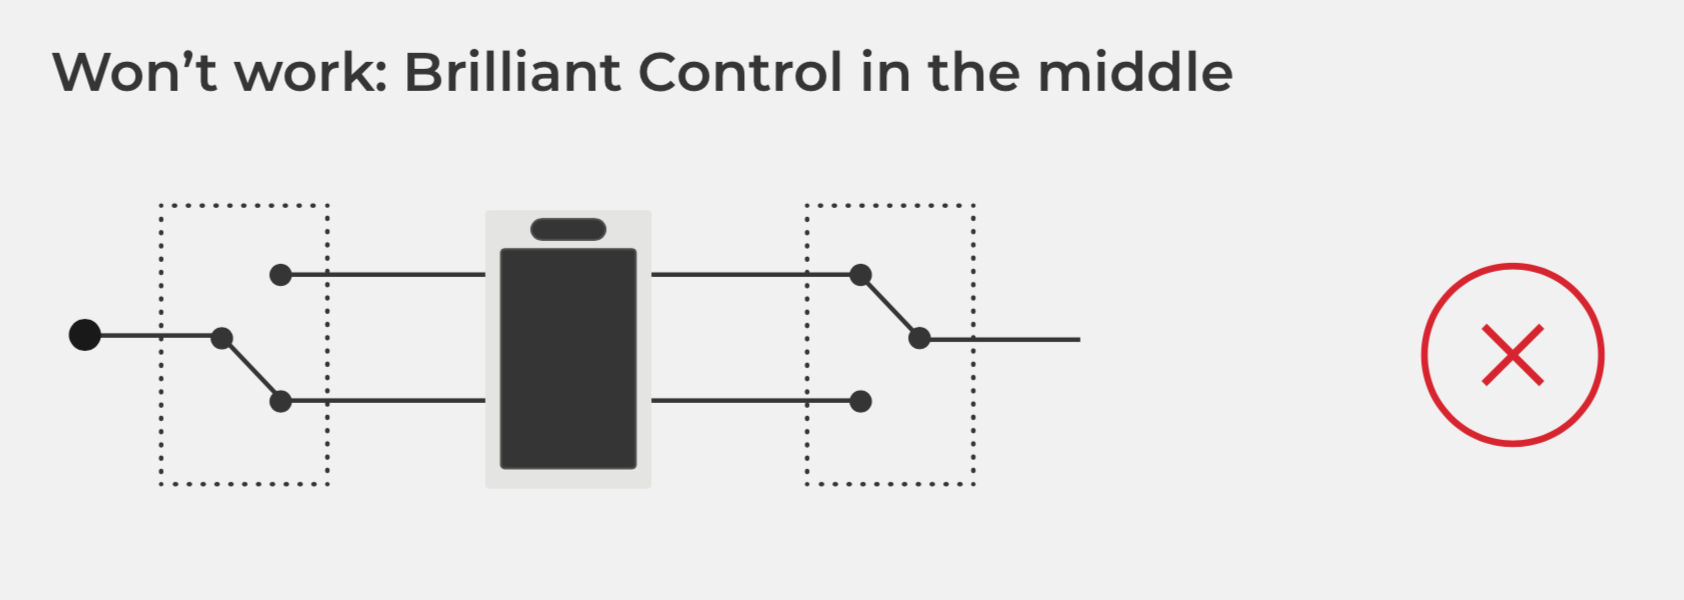 Won_t_work_-_Brilliant_Control_in_the_middle.png